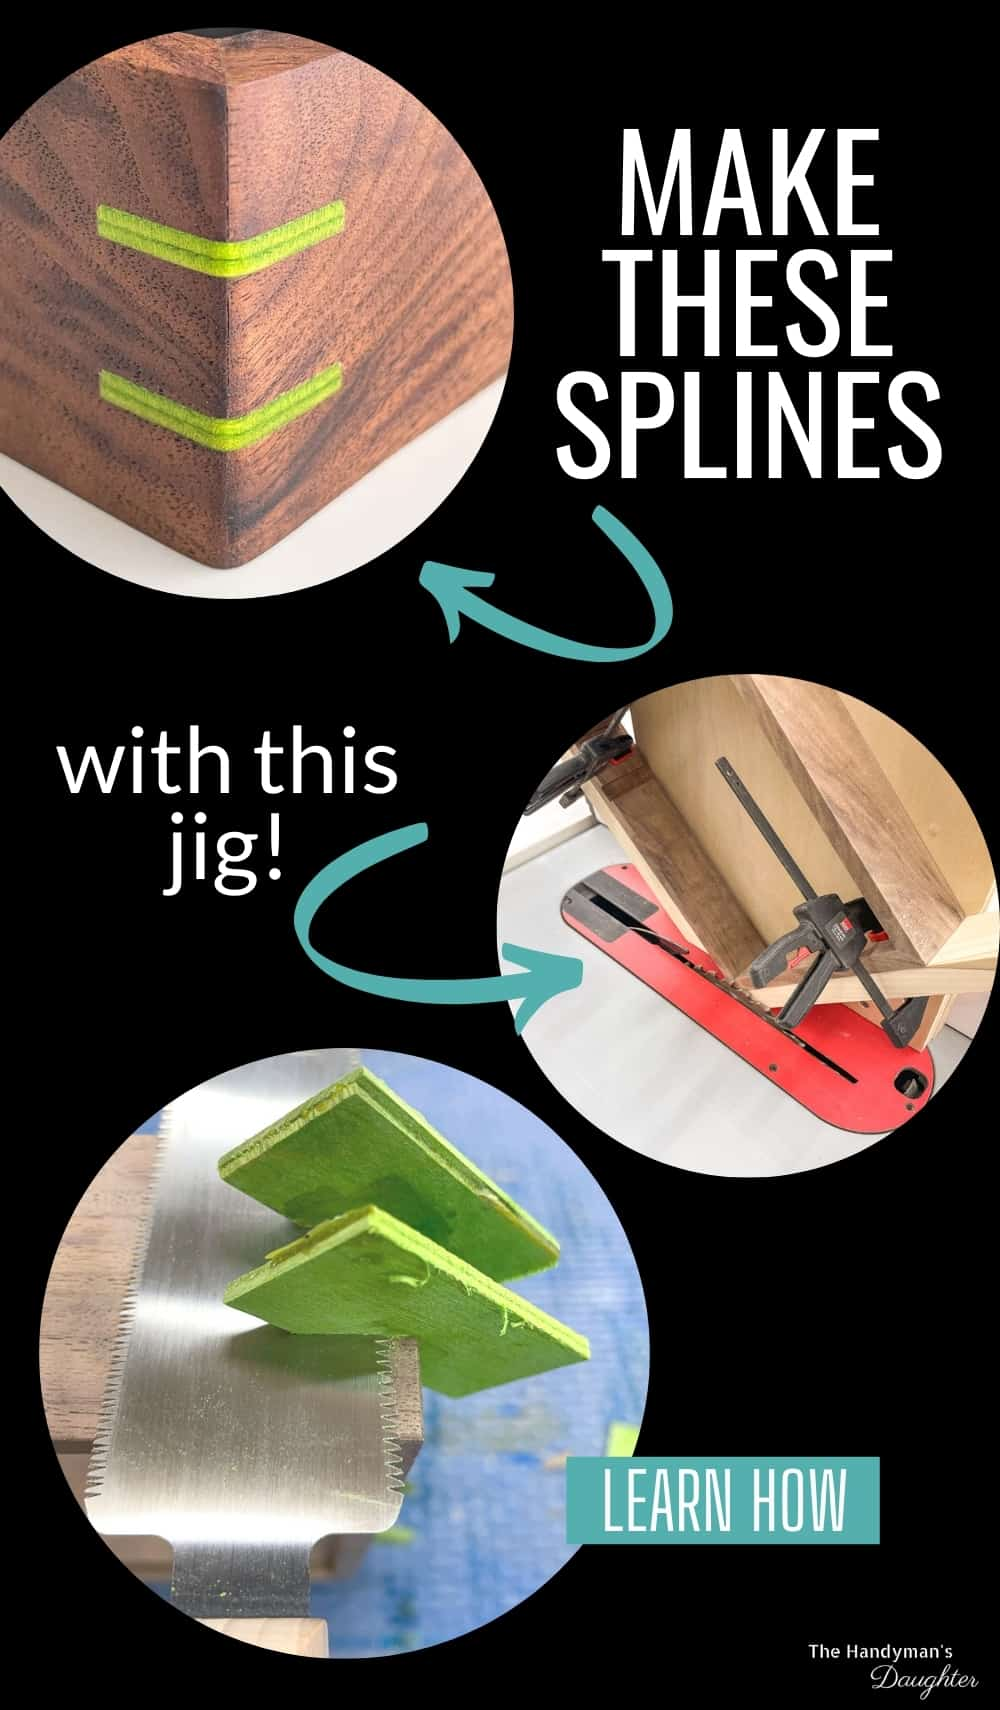 make these splines with this jig!